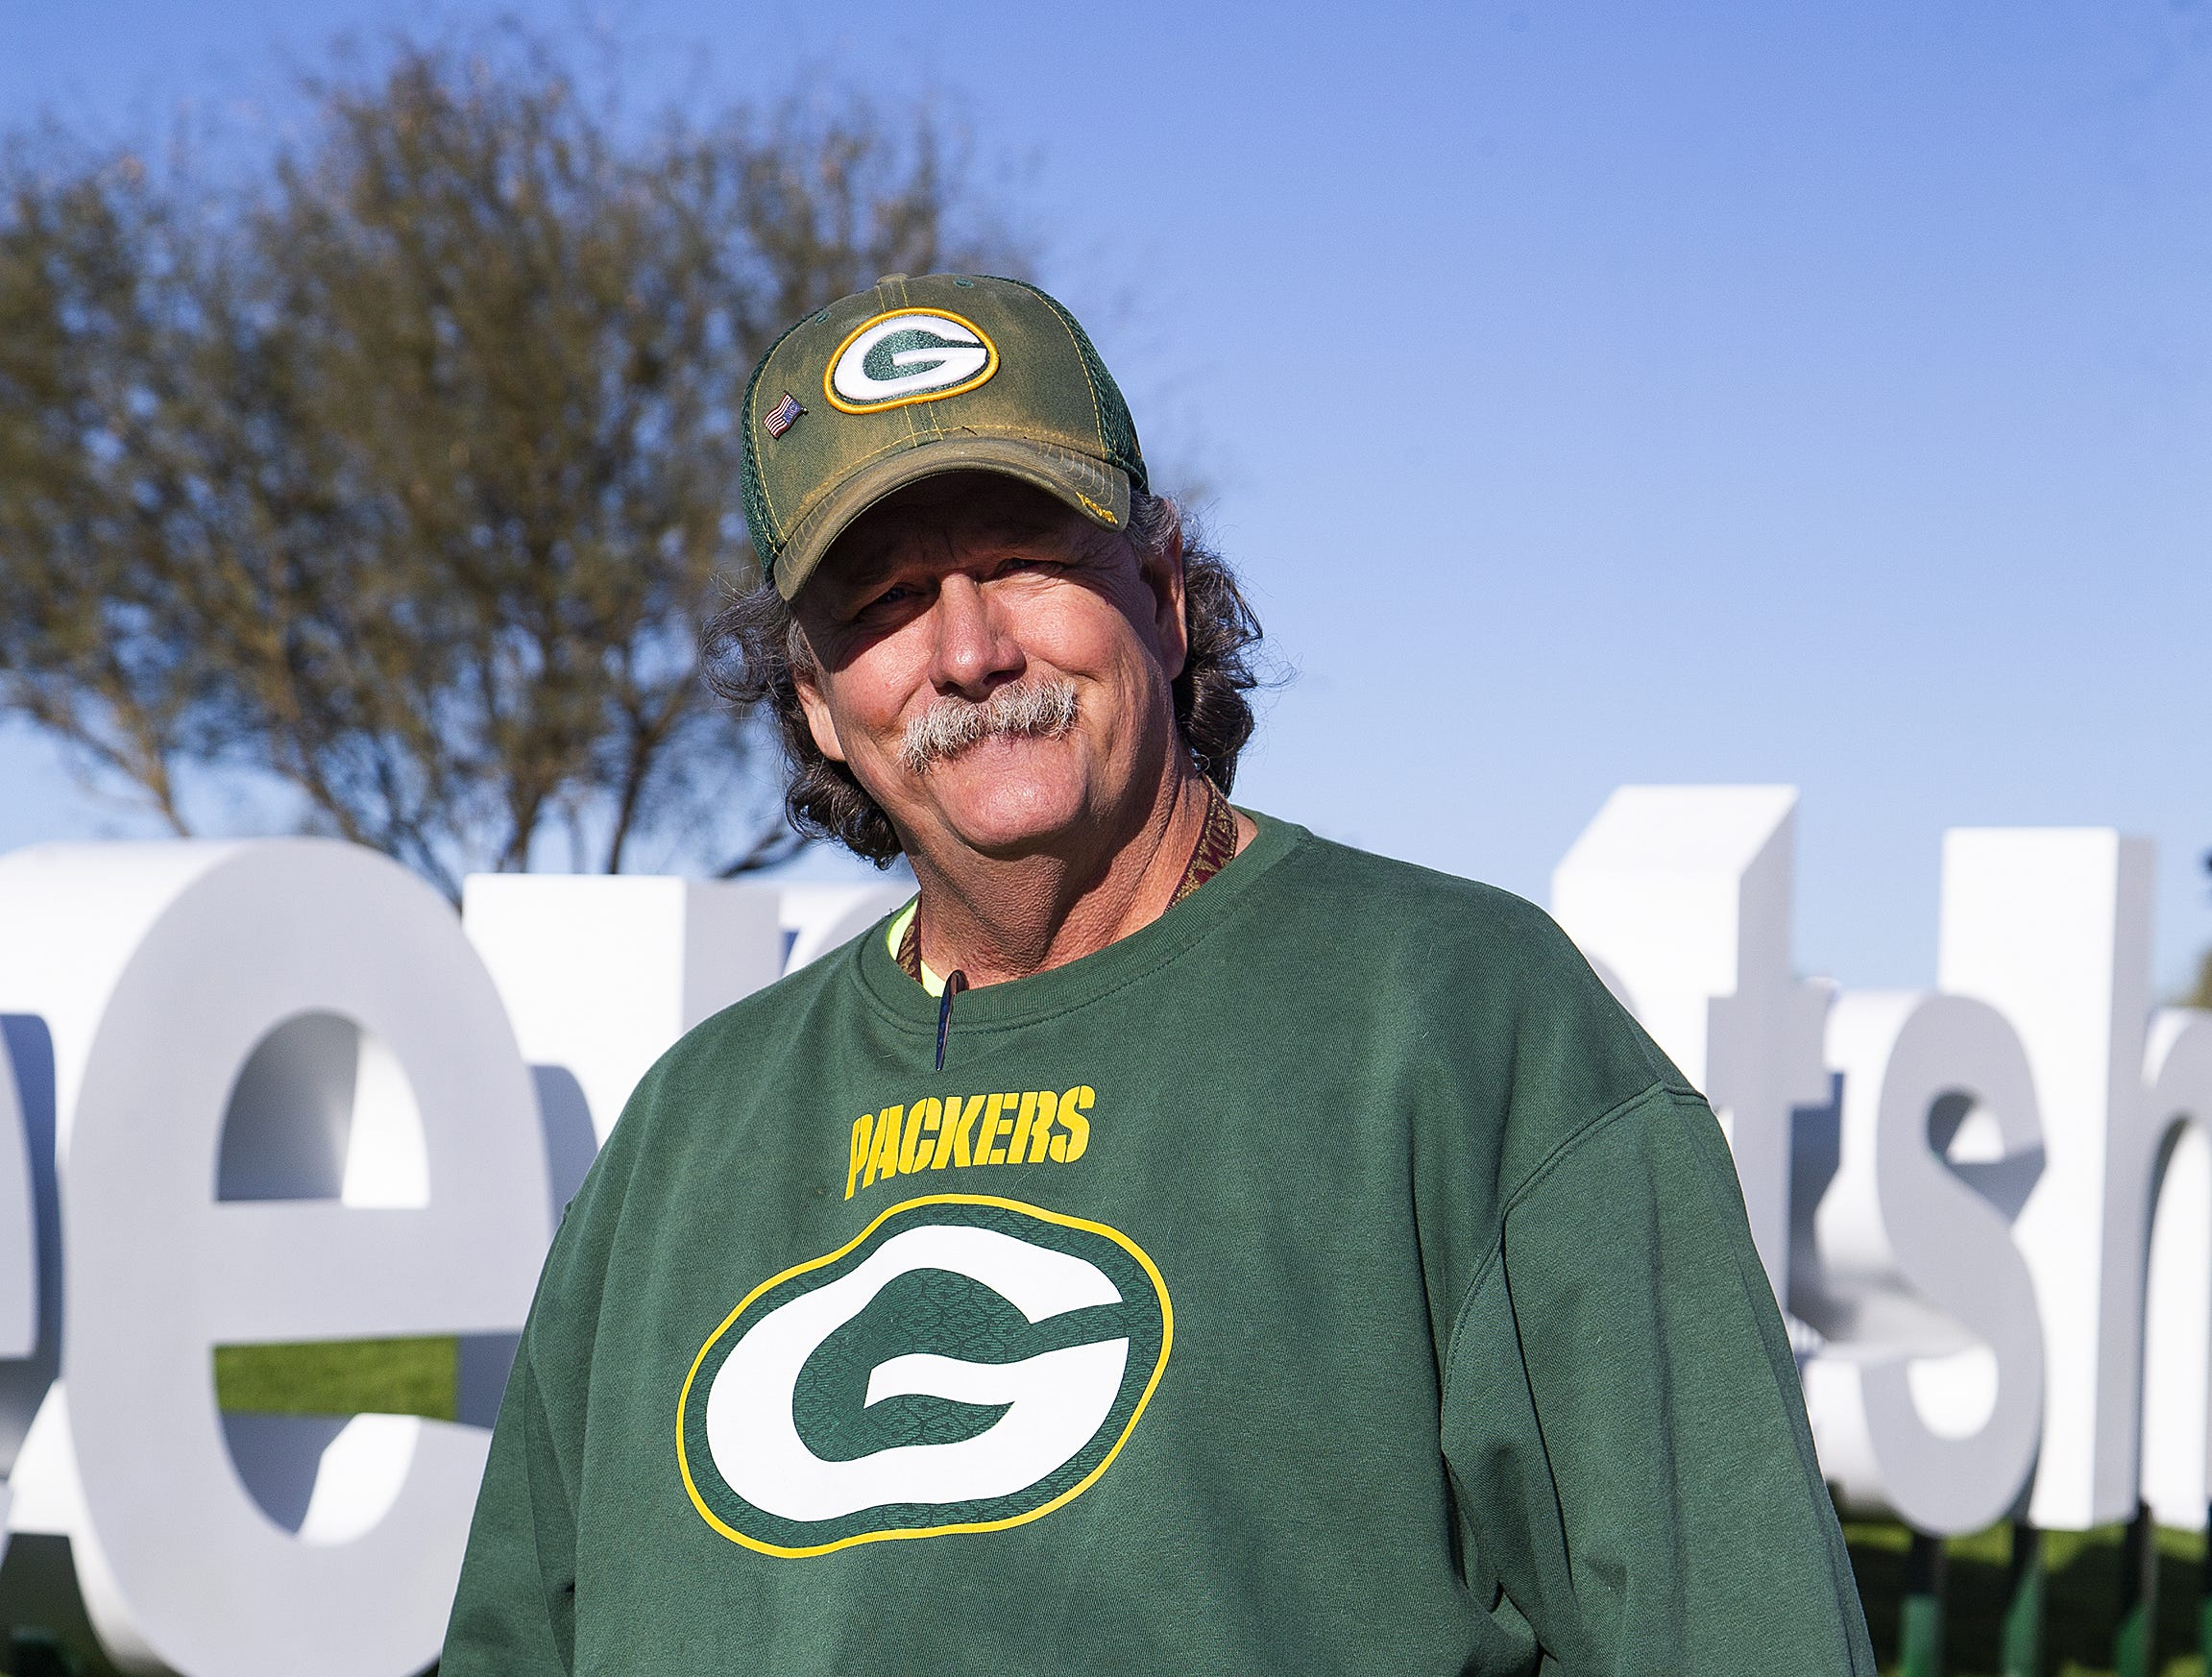 Mark Haefs, 63, Tempe, wears his Green Bay Packers swag during the second round of the Waste Management Phoenix Open at the TPC Scottsdale, Friday, February 1, 2019.